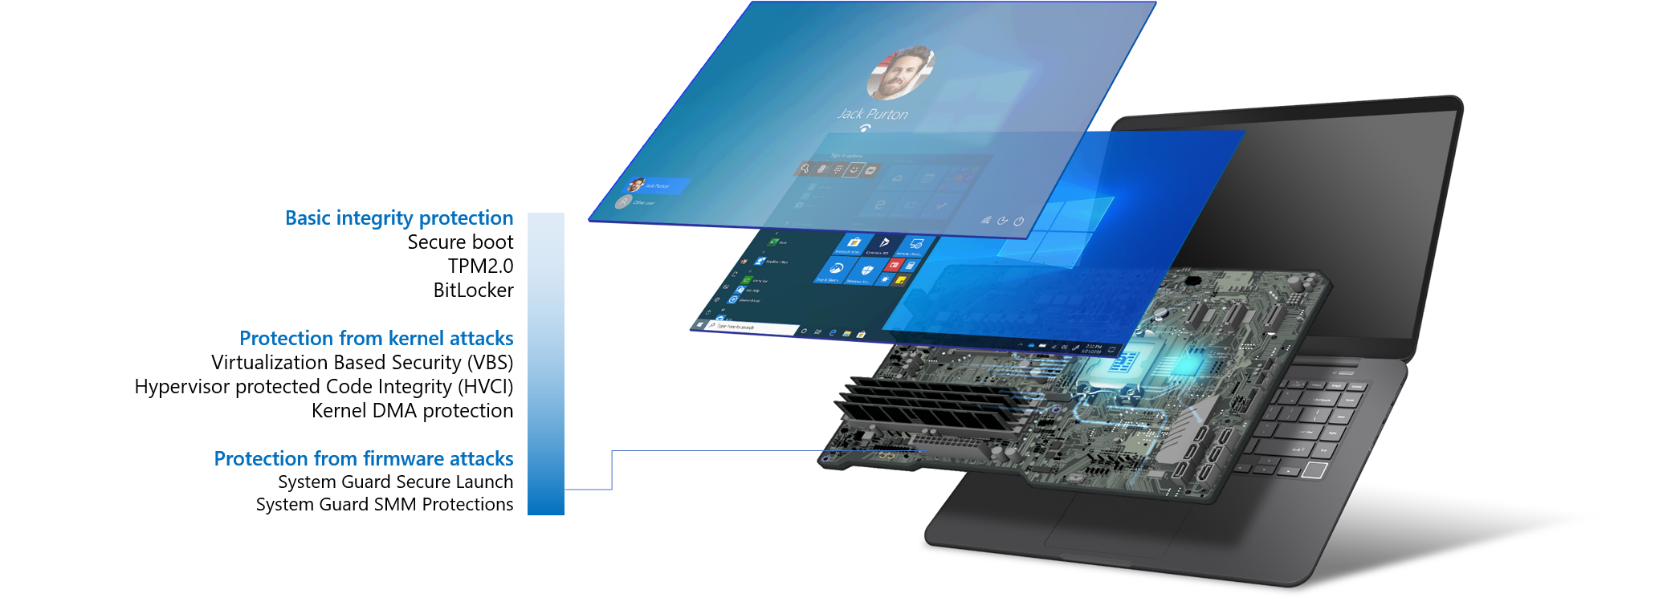 Microsoft announces the new Secured-core PCs fig-2-secured-core-pc.png